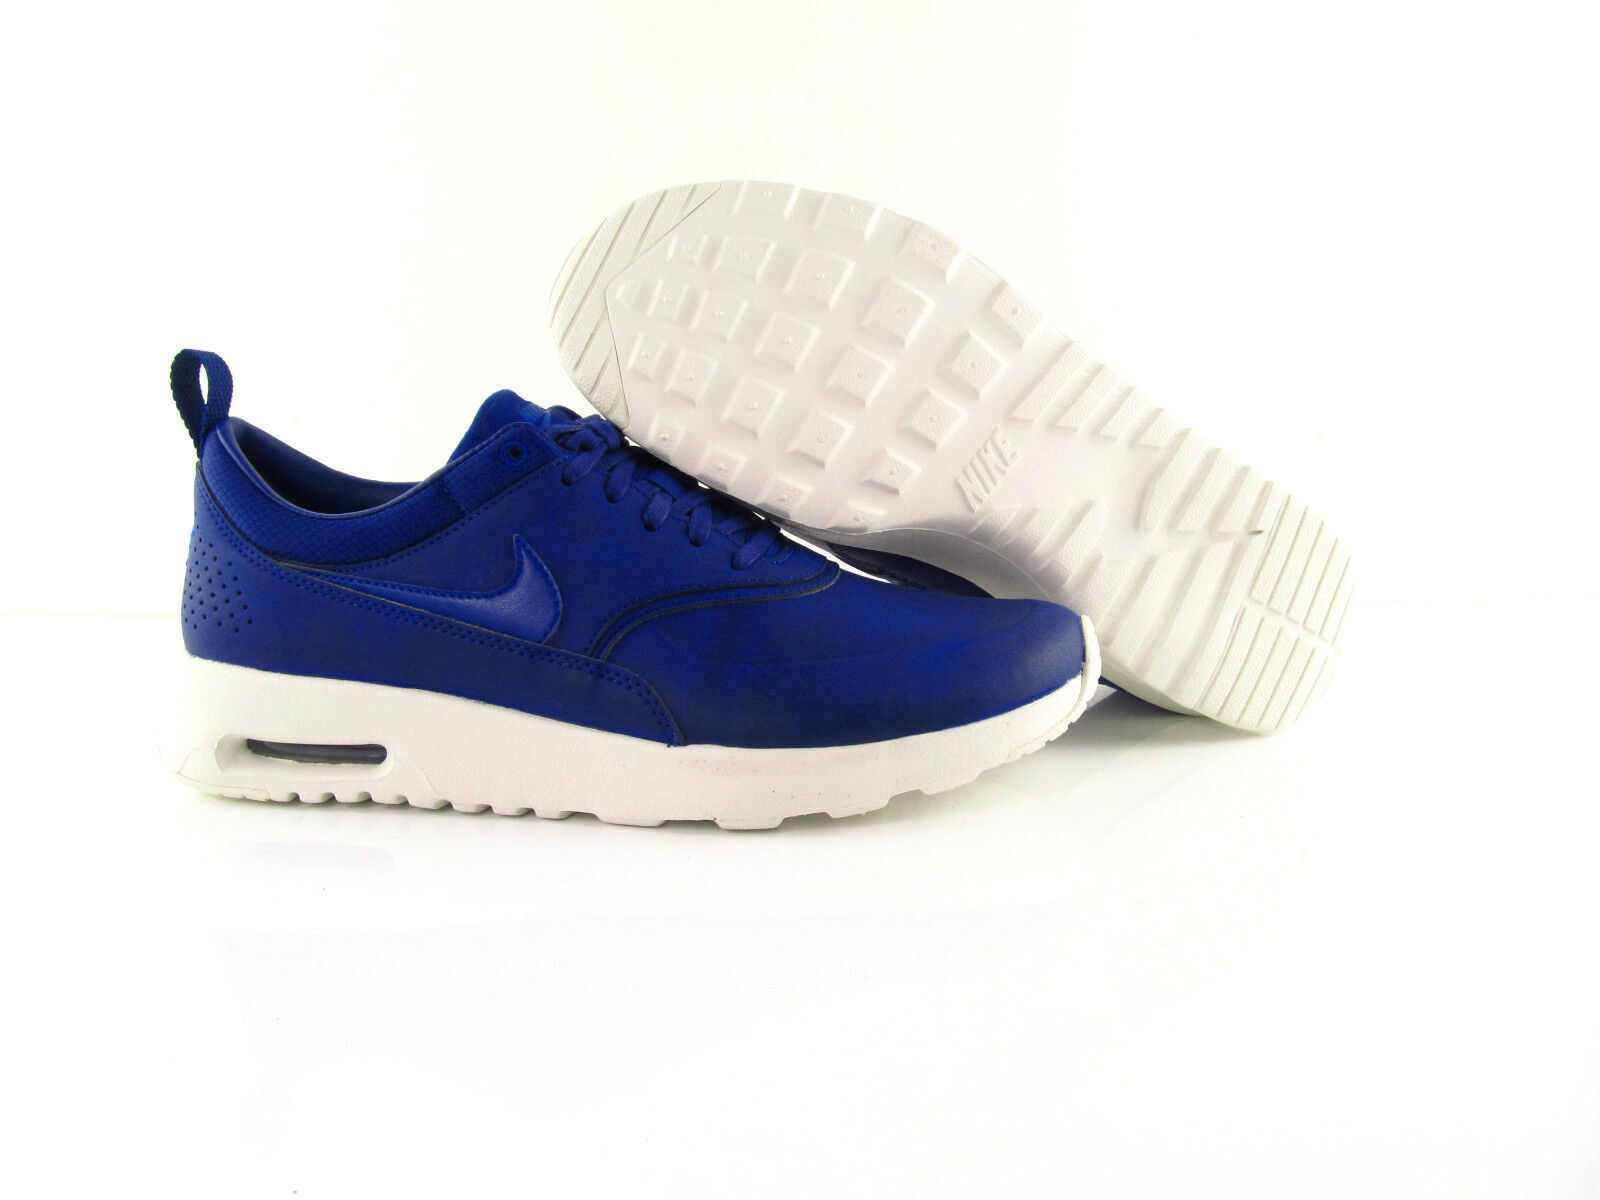 Nike Bir Max Thea Leather Blue White Sneakers New  Eur 40 - 40.5 - 41